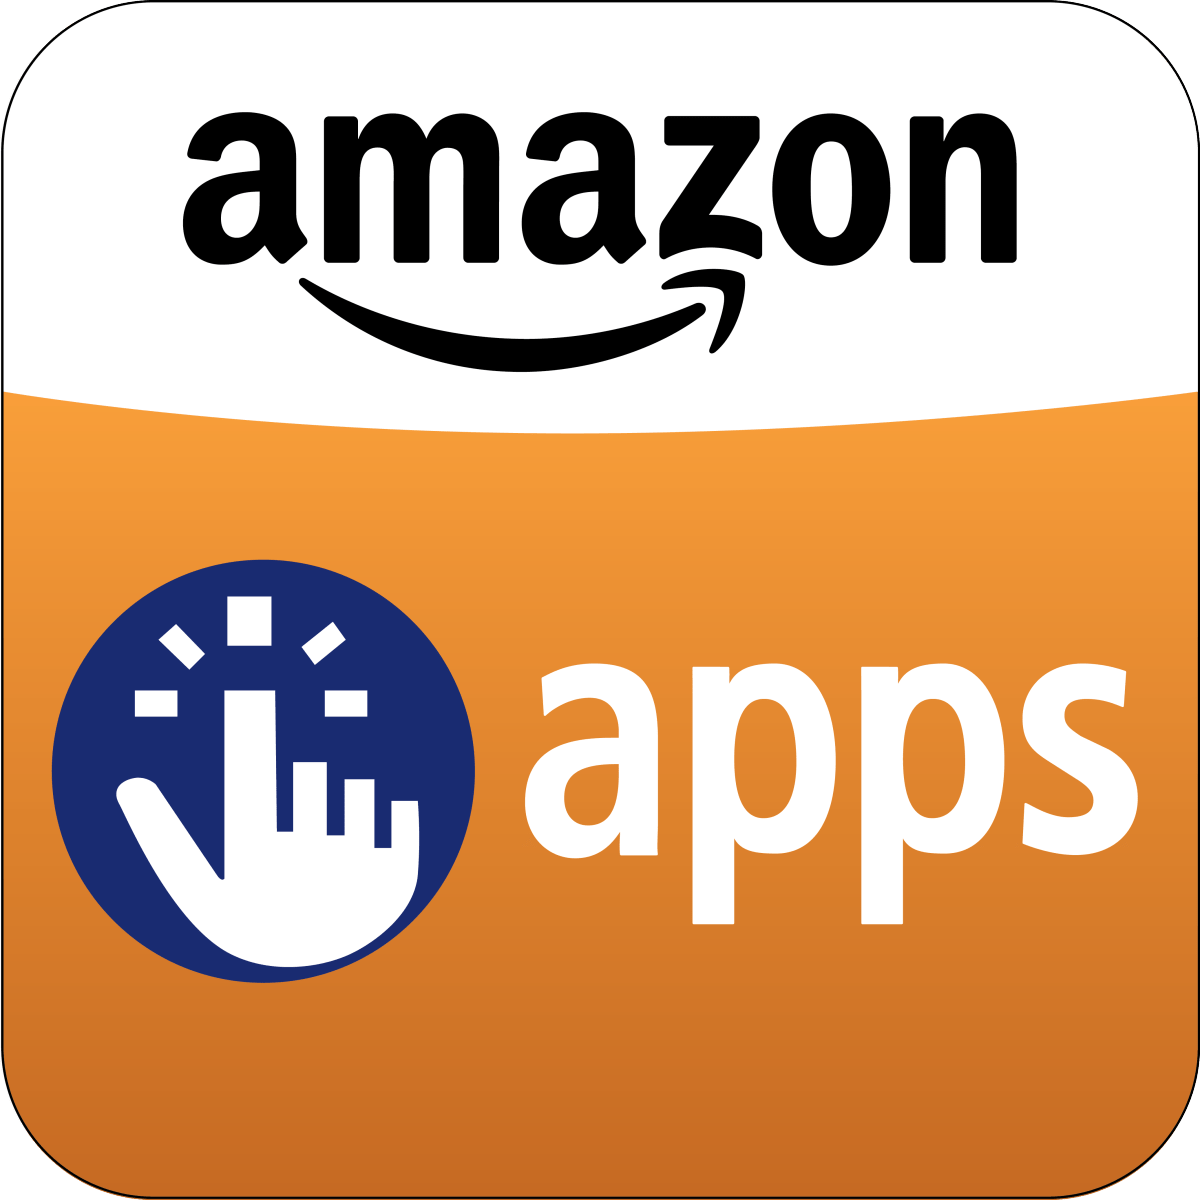 amazon android appstore free app of the day